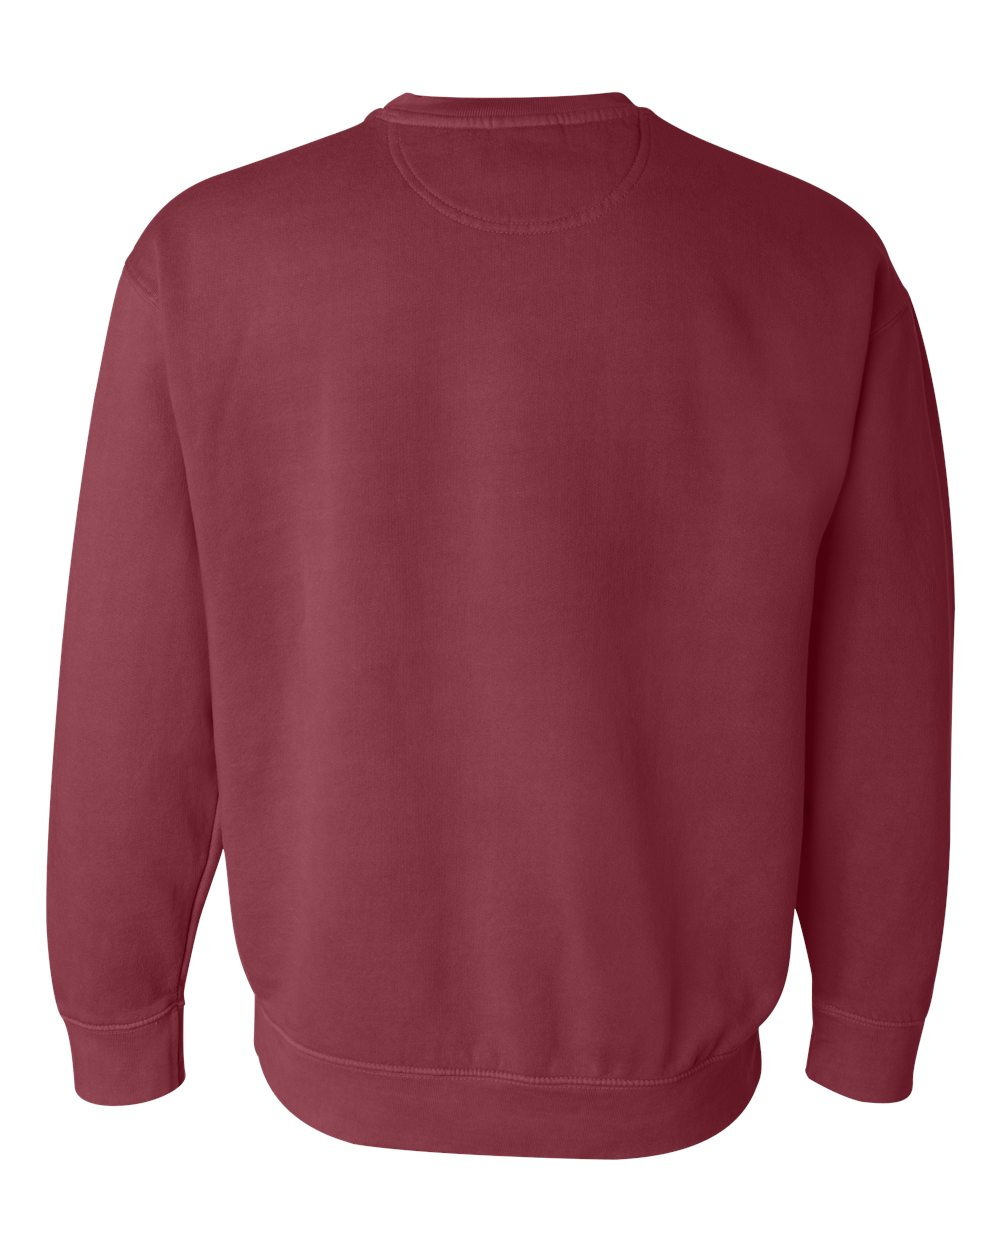 Comfort-Colors-Mens-Garment-Dyed-Ringspun-Crewneck-Sweatshirt-1566-up-to-3XL miniature 25